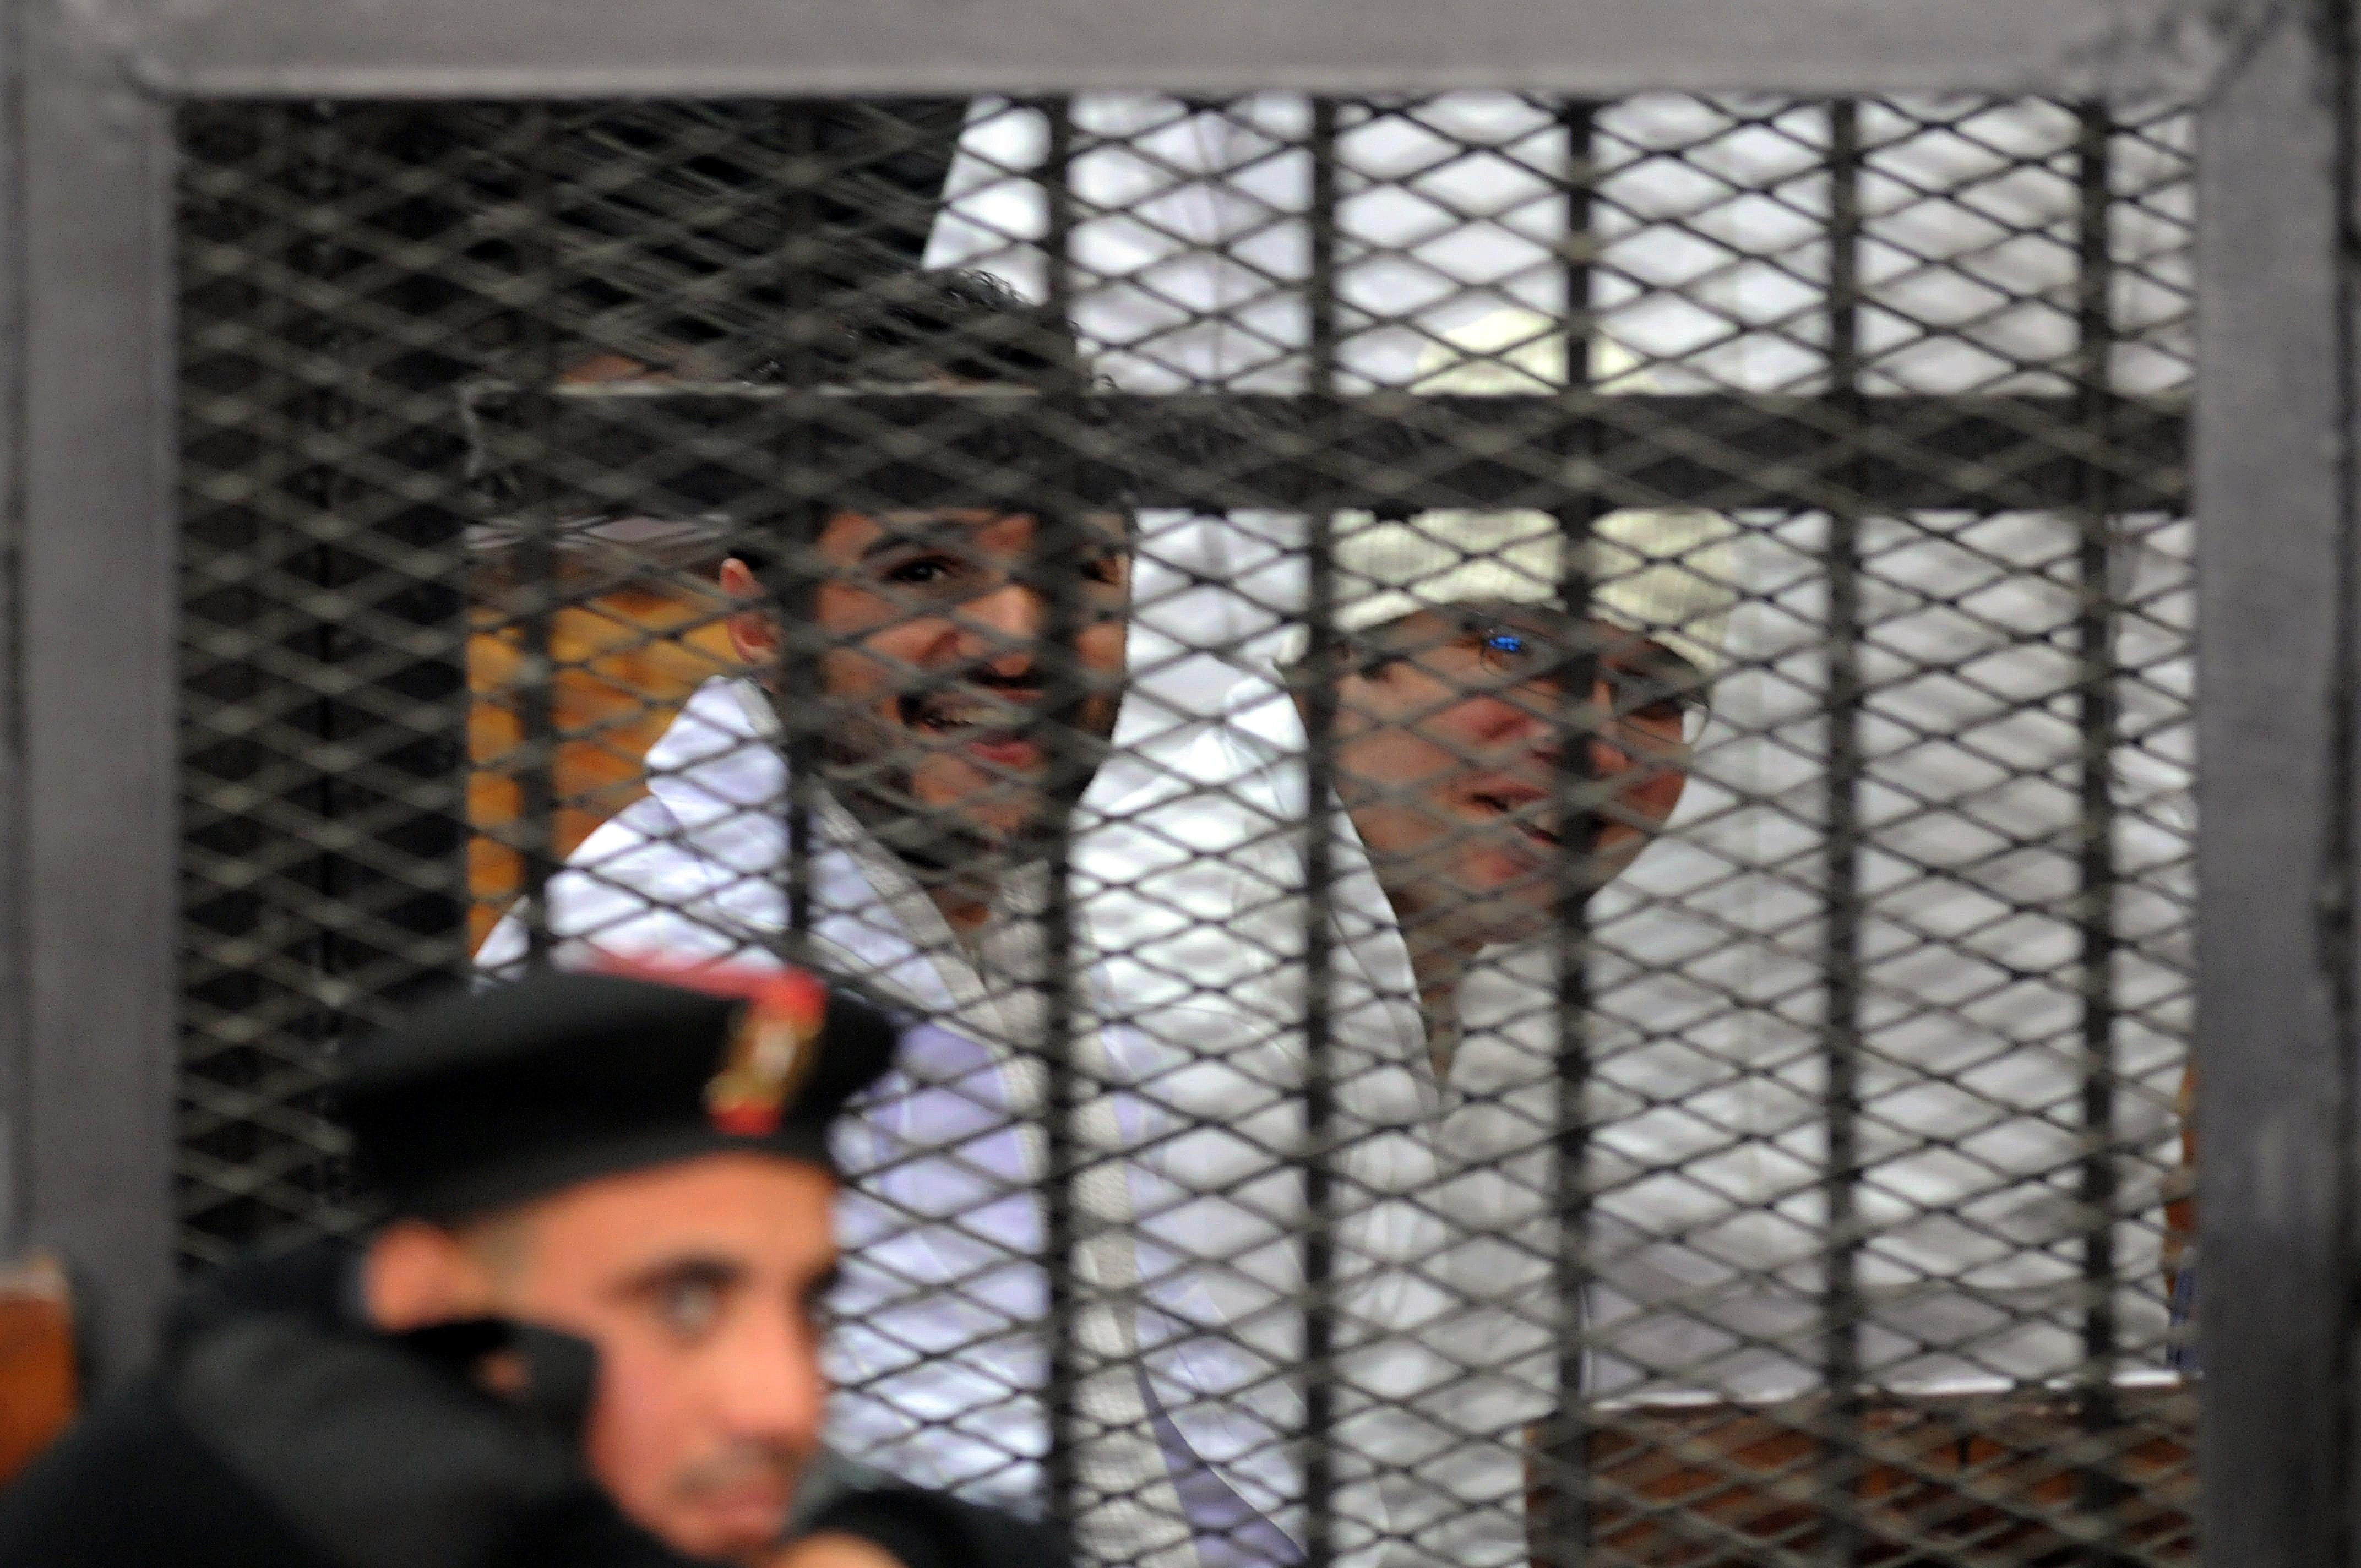 Egyptian prominent activicts Ahmed Douma (L) and Ahmed Maher (R), the founder of the April 6 youth movement that led the revolt against ousted president Hosni Mubarak, as they stand in the accused dock during their trial on December 22, 2013 in Cairo. An Egyptian court sentenced three activists, Douma, Maher and Mohamed Adel, who spearheaded the 2011 uprising against Hosni Mubarak to three years in jail for organising an unlicensed protest, judicial sources said. It was the first such verdict against non-Islamist protesters since the overthrow of president Mohamed Morsi in July, and was seen by rights groups as part of a widening crackdown on demonstrations by military-installed authorities. (AFP PHOTO/STR)